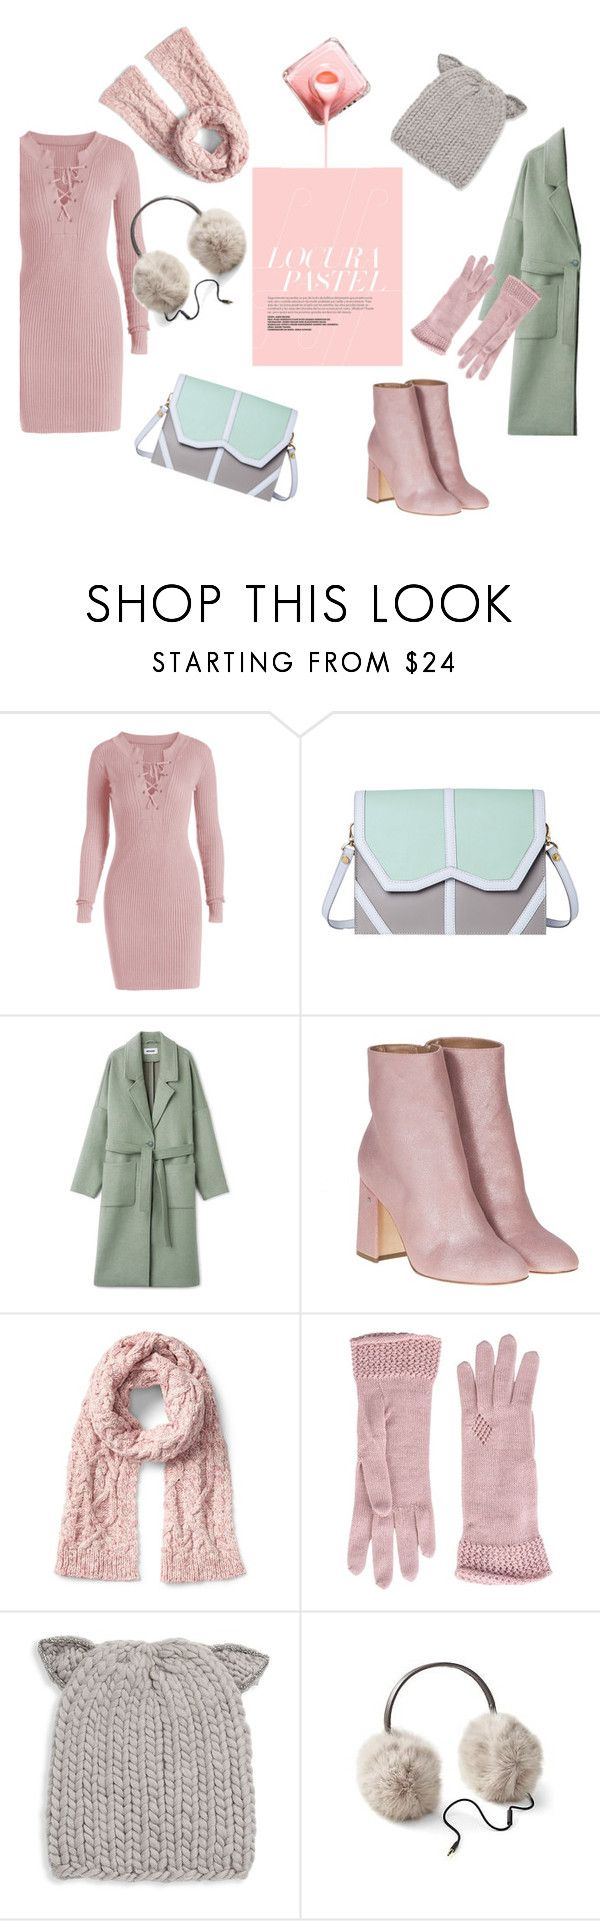 """""""Pastels for cold weather"""" by manaaw ❤ liked on Polyvore featuring Emeline Coates, Laurence Dacade, Jolie By Edward Spiers and Eugenia Kim"""